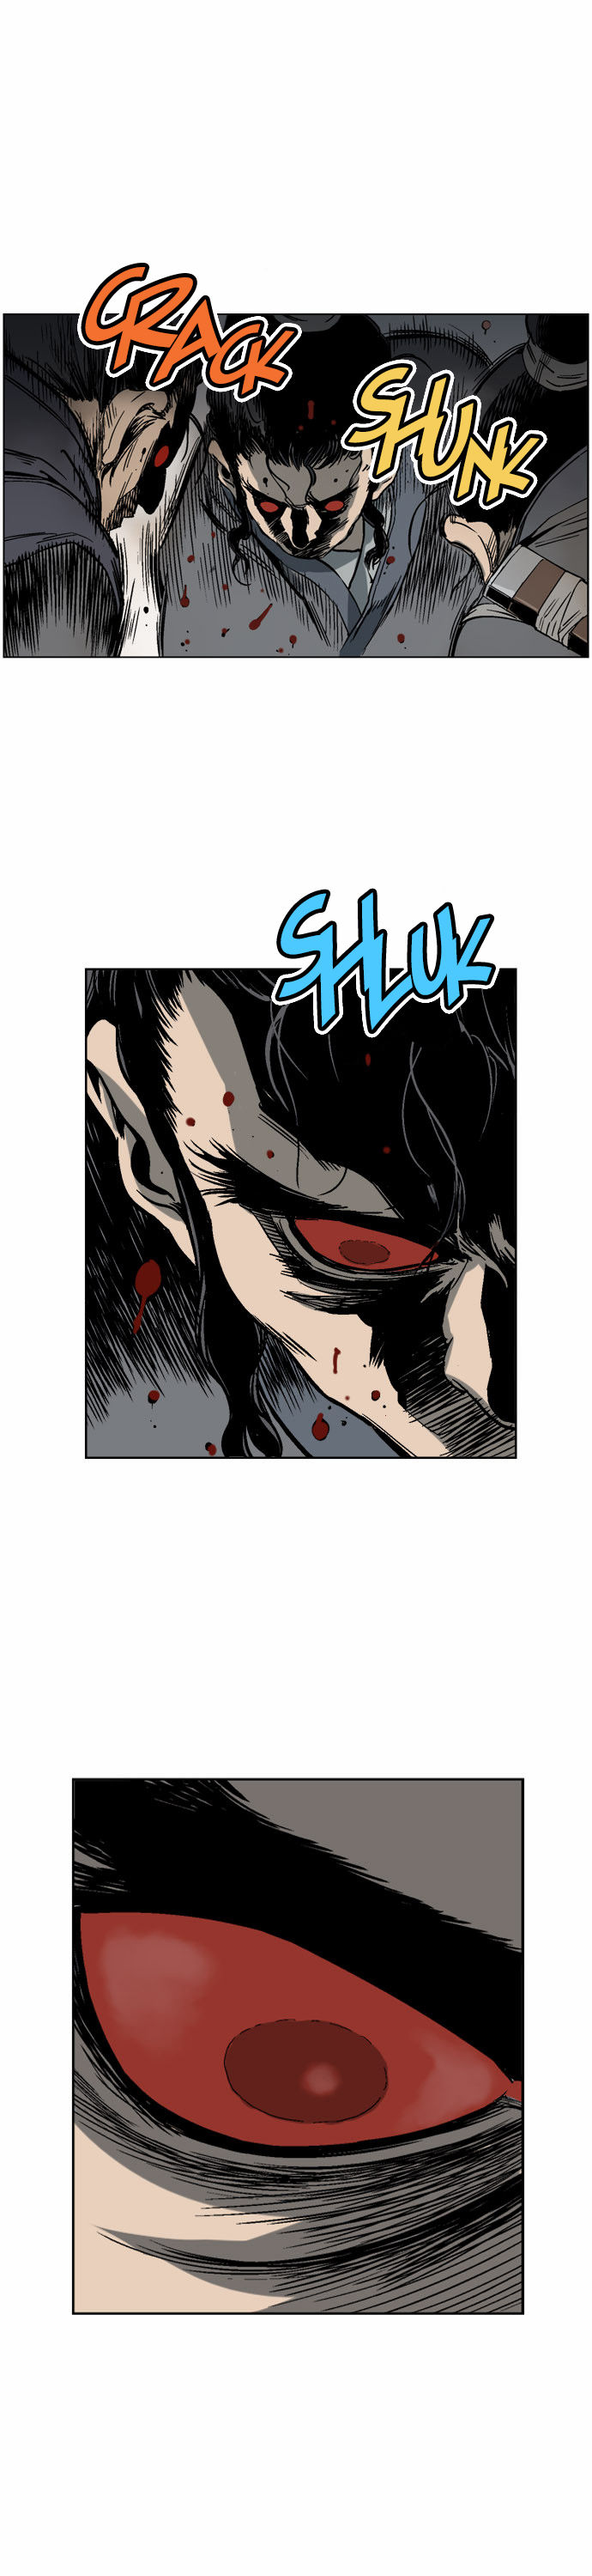 Gosu (The Master) - Chapter 45